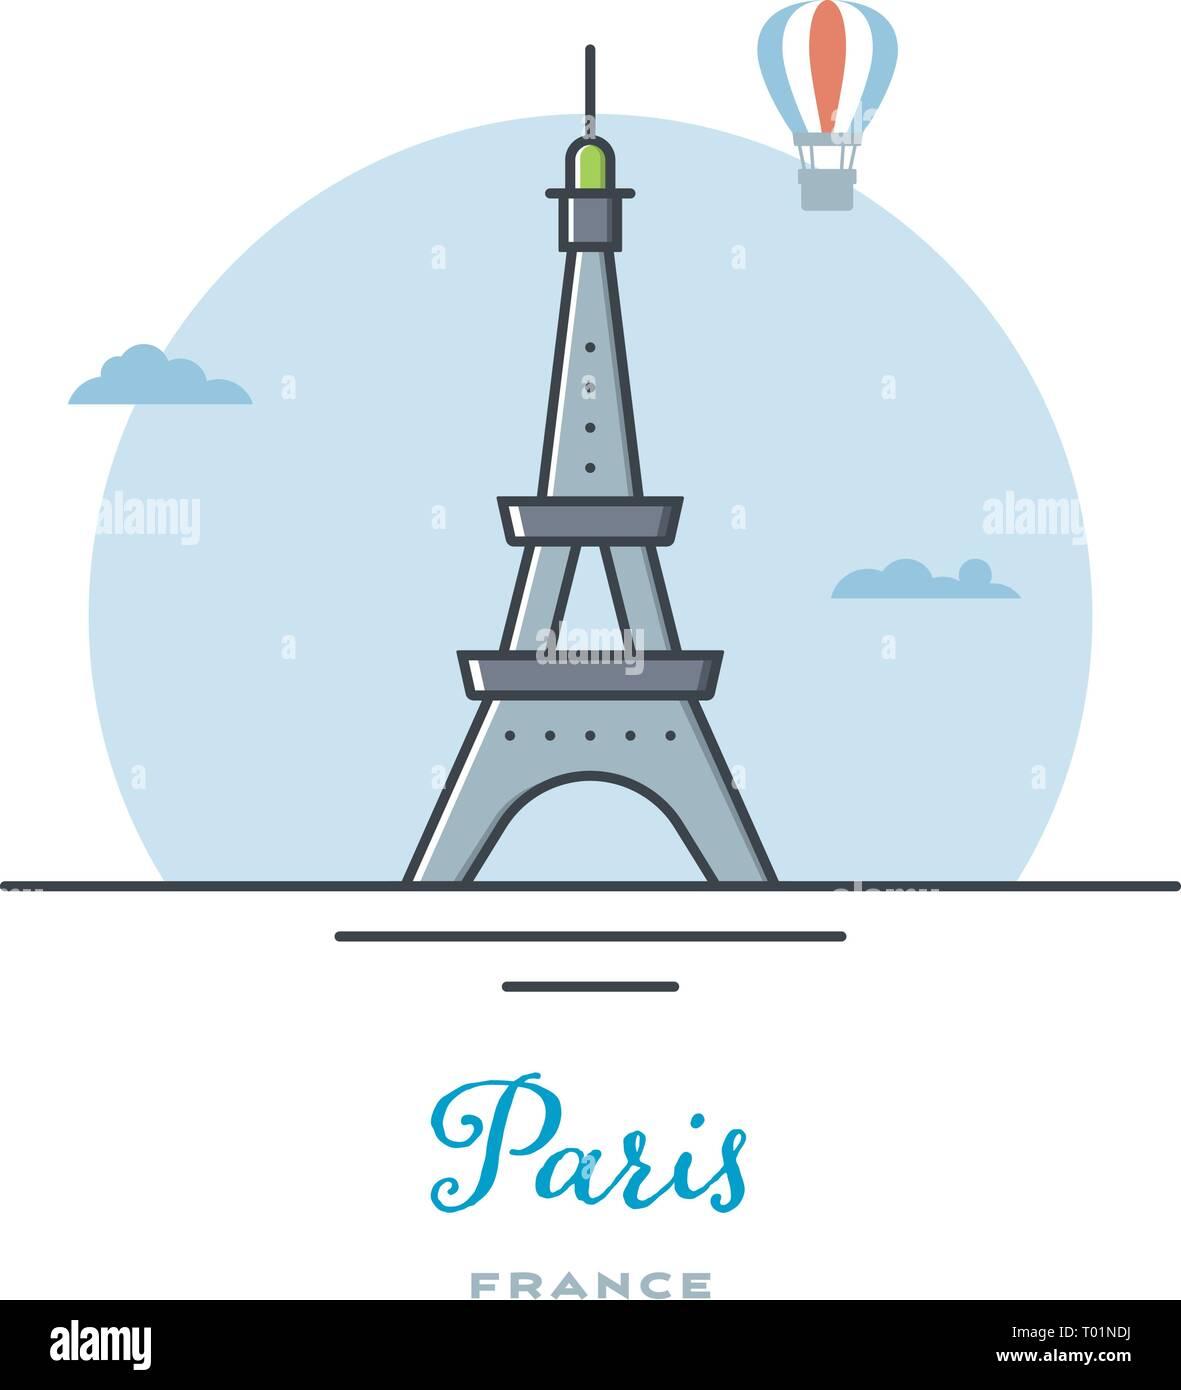 Eiffel Tower at Paris, France, flat vector illustration. Tourism and travel icon. - Stock Vector